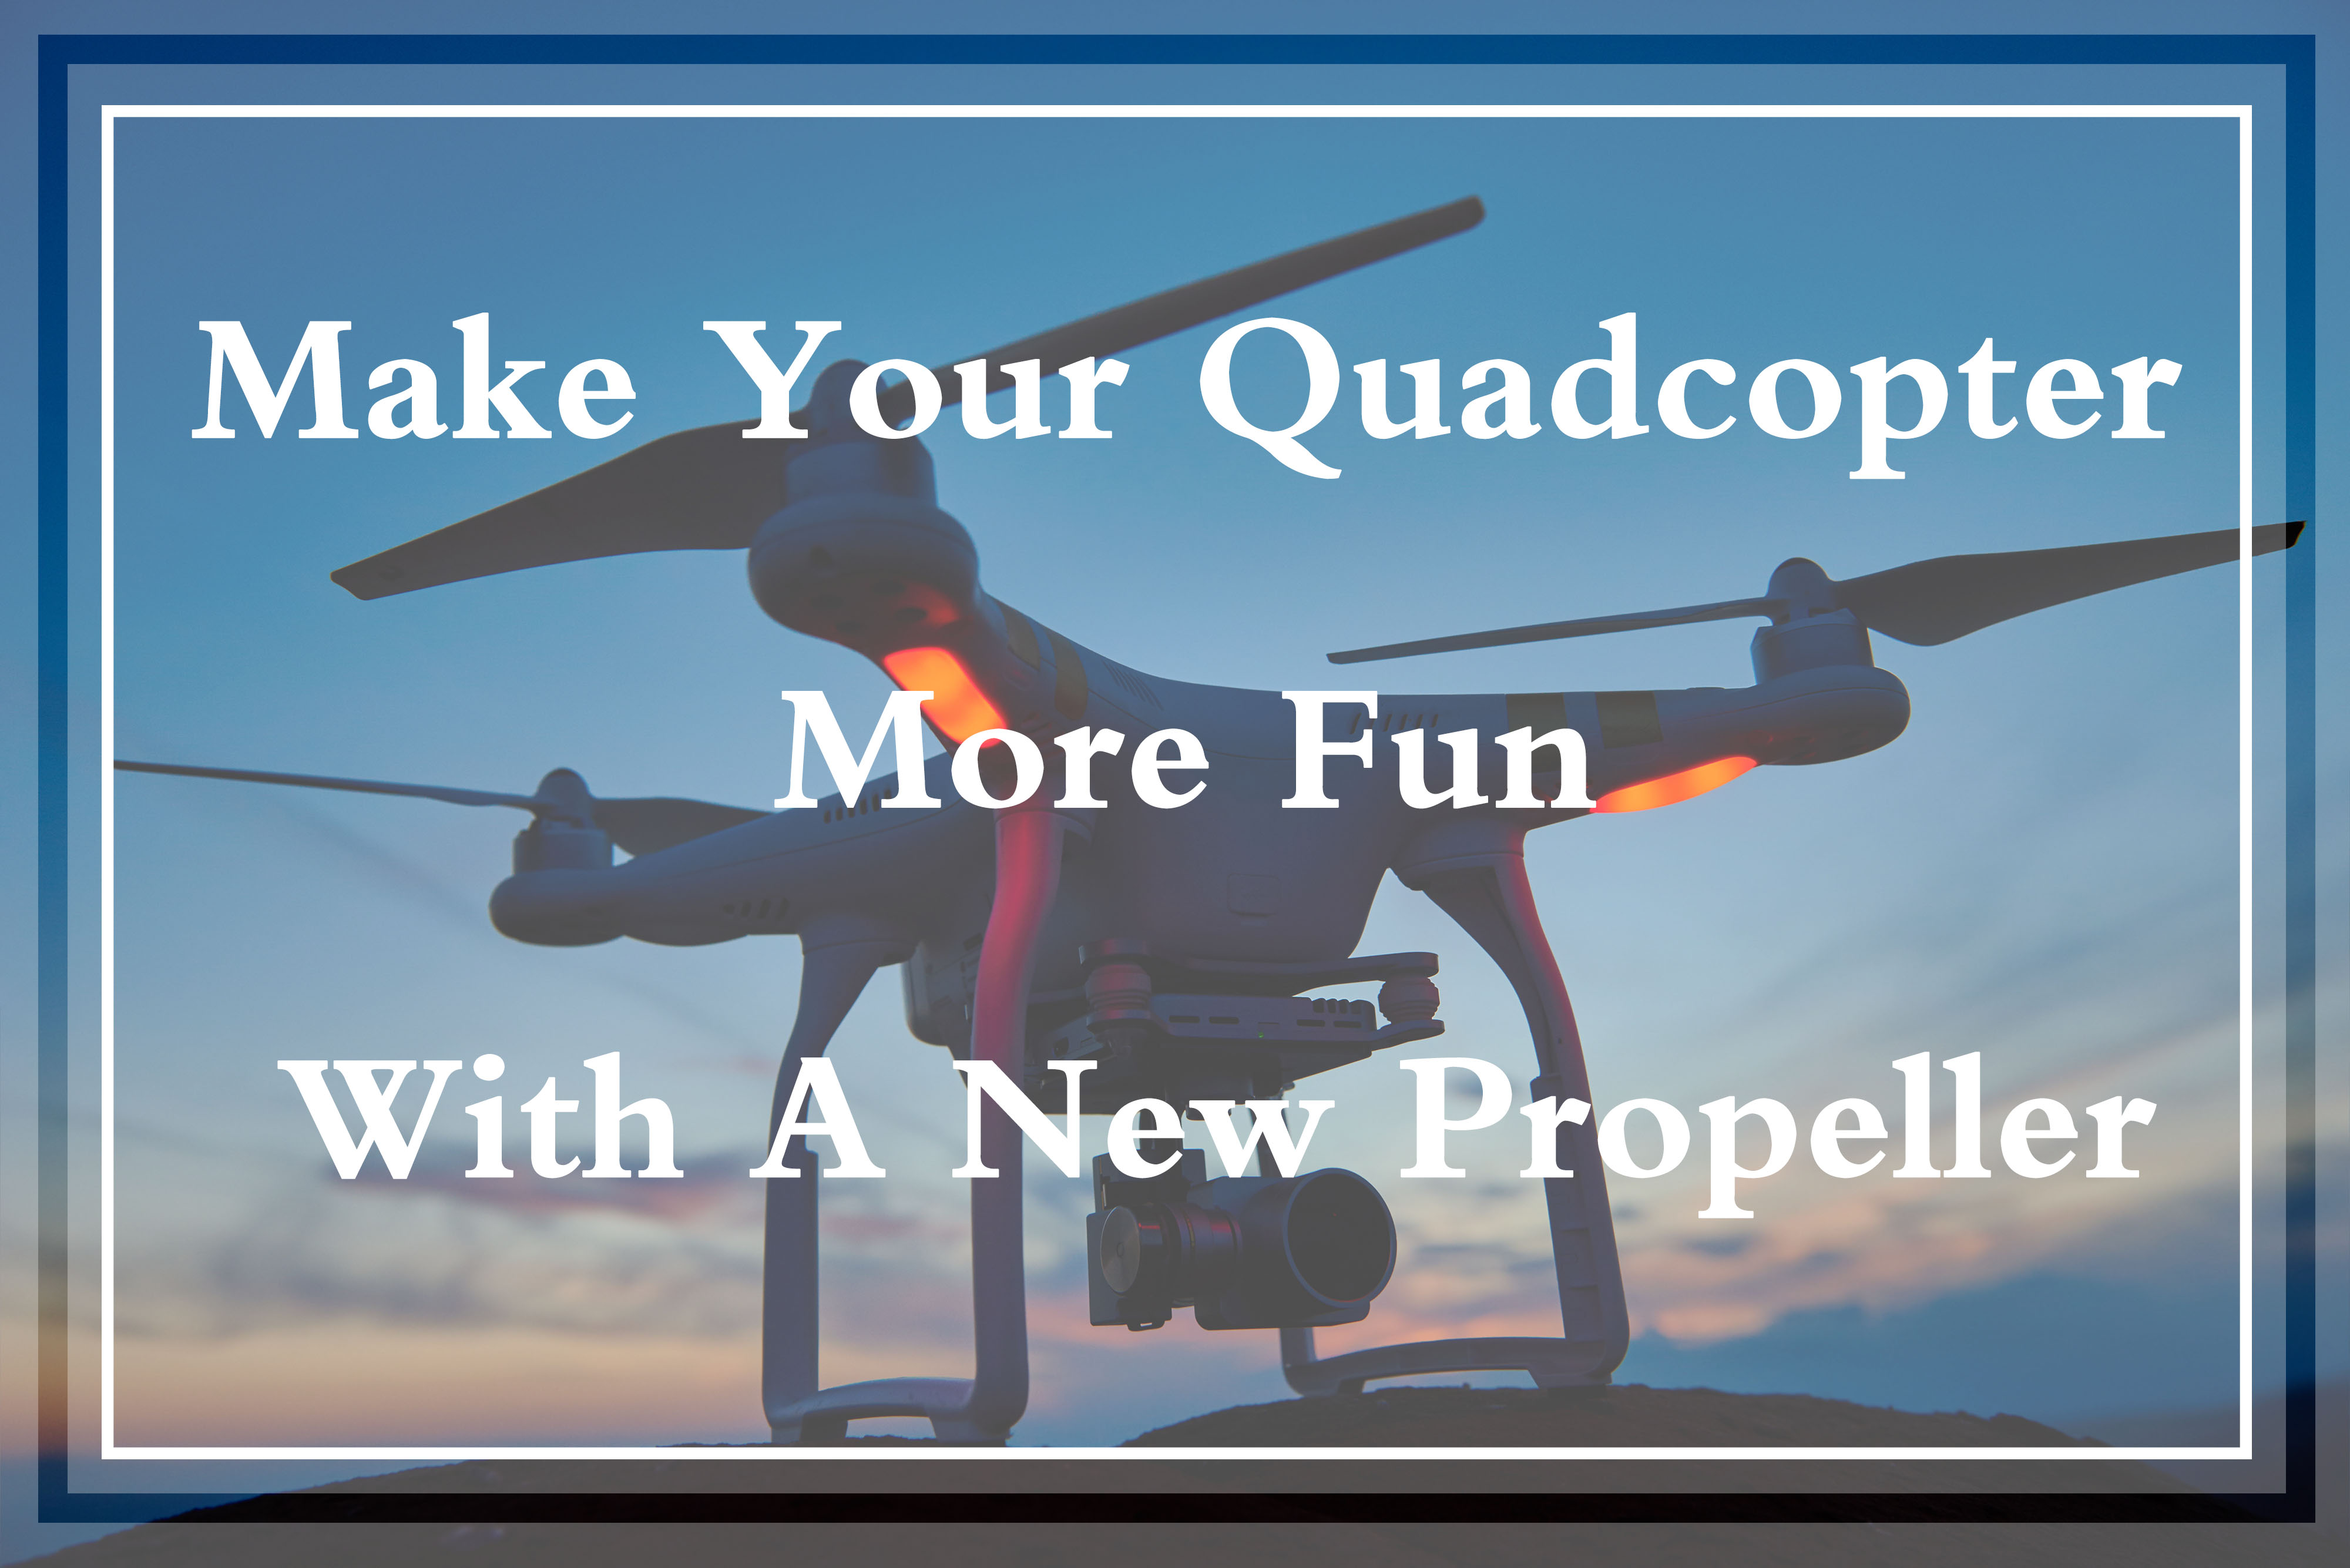 Make Your Quadcopter More Fun With New Propellers